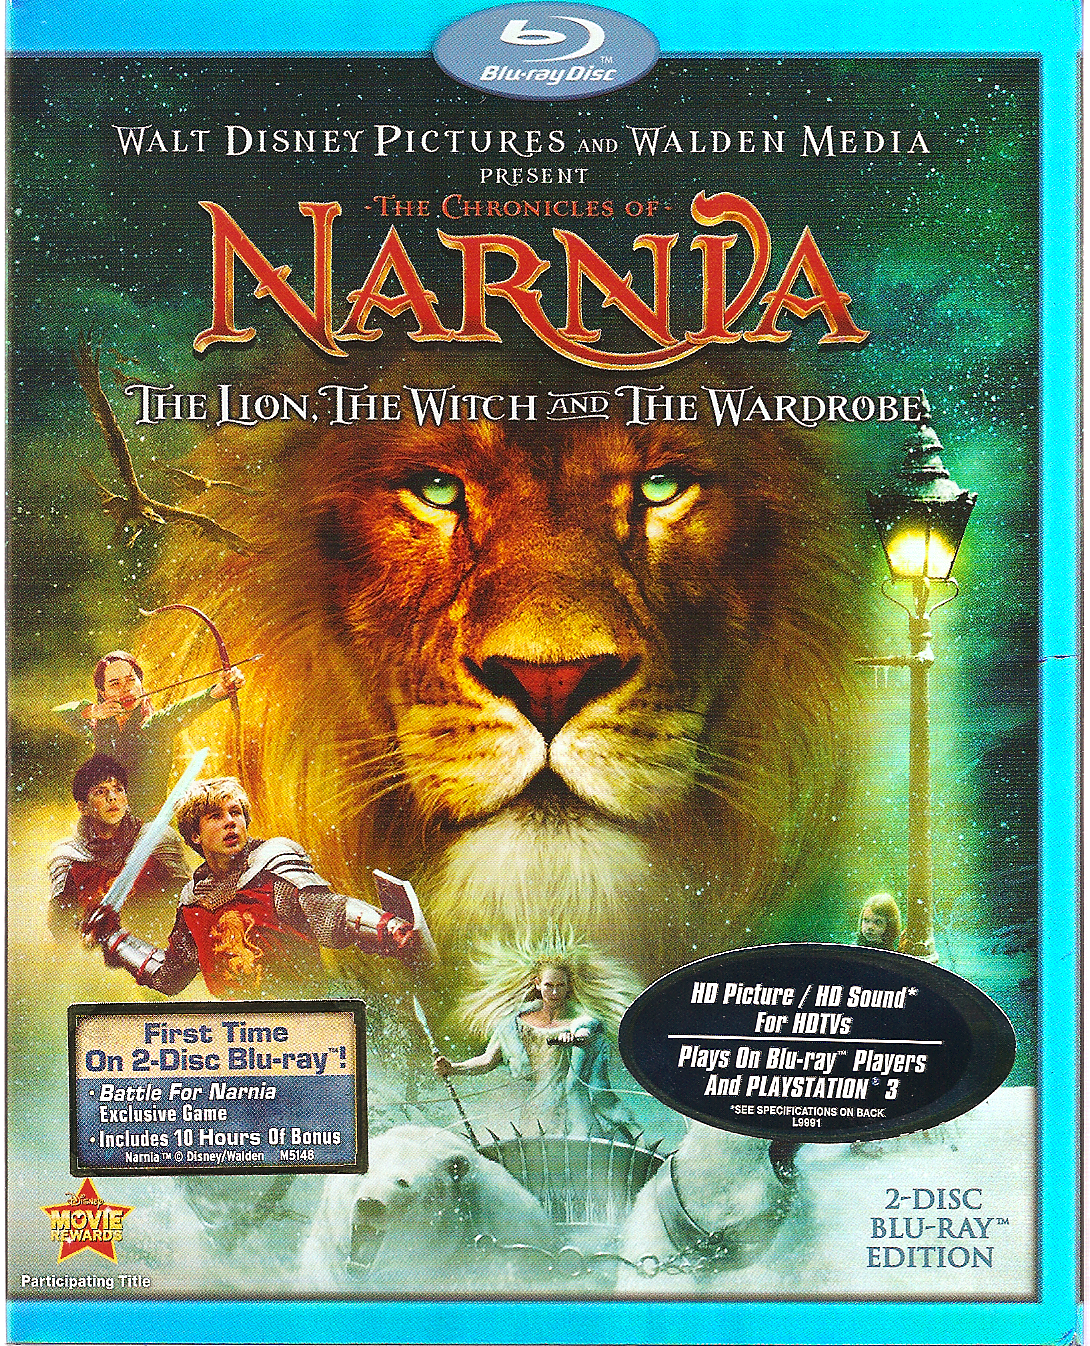 Original Lion Witch And The Wardrobe Movie: Soundtrack, Blu-ray Now Available - NarniaWeb